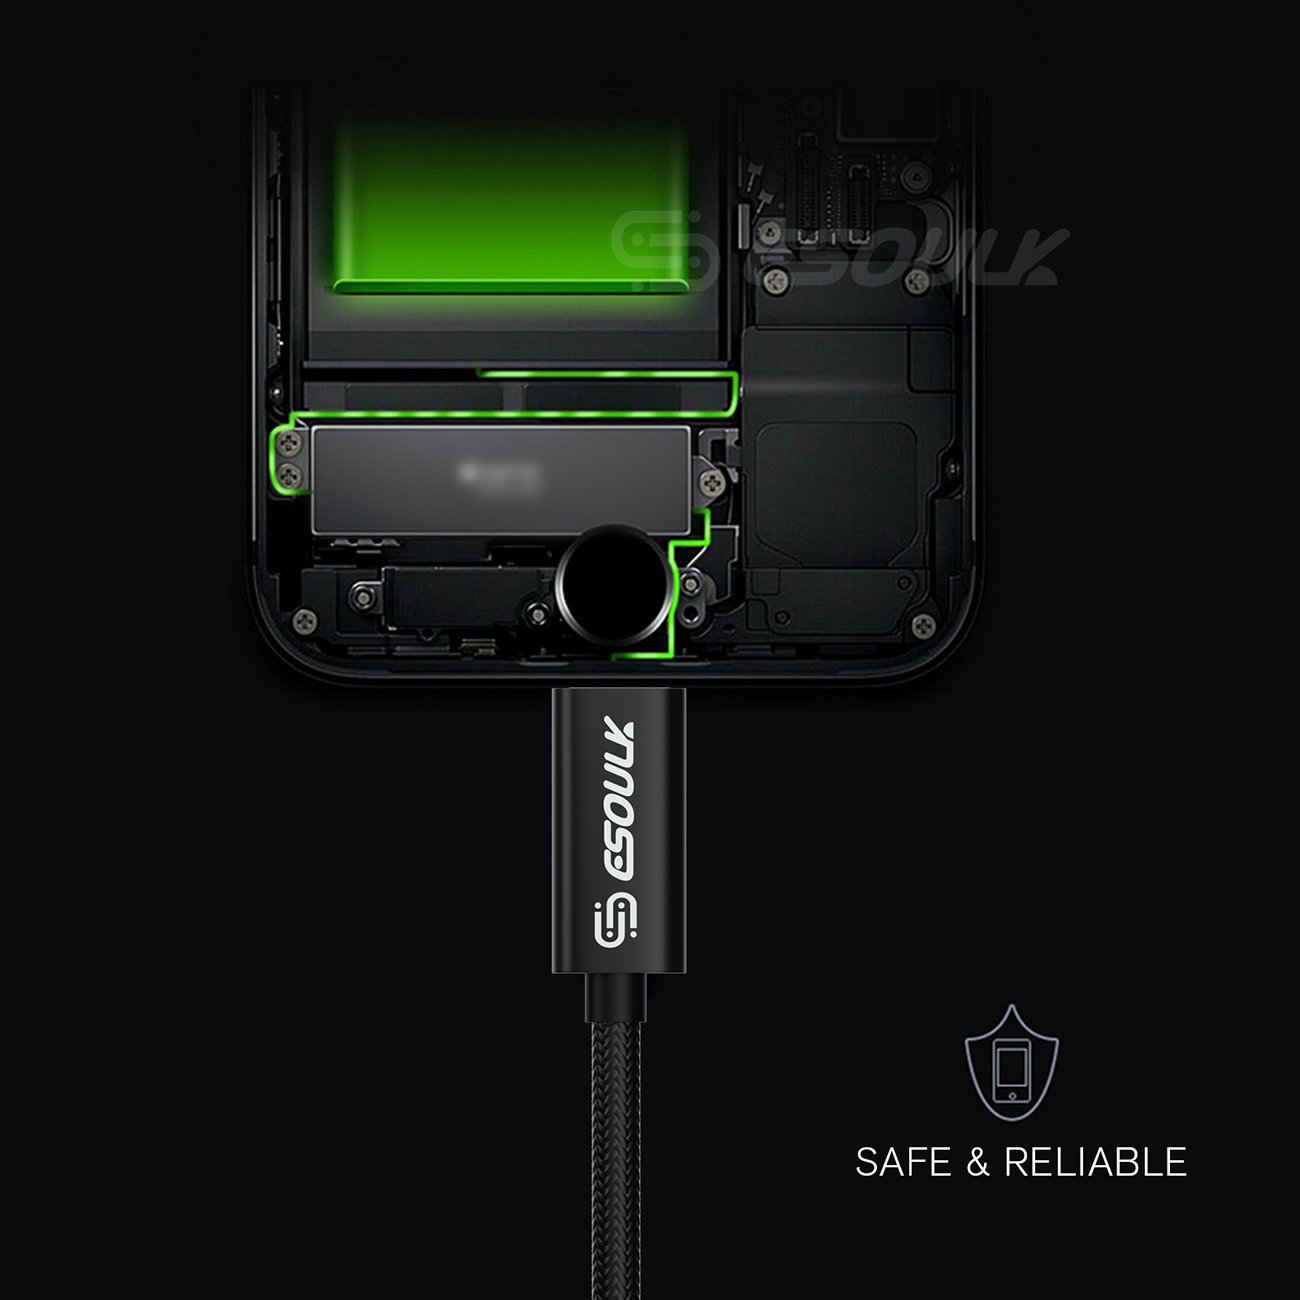 Esoulk 1.7A 10FT USB Cable For 8 PIN In Black